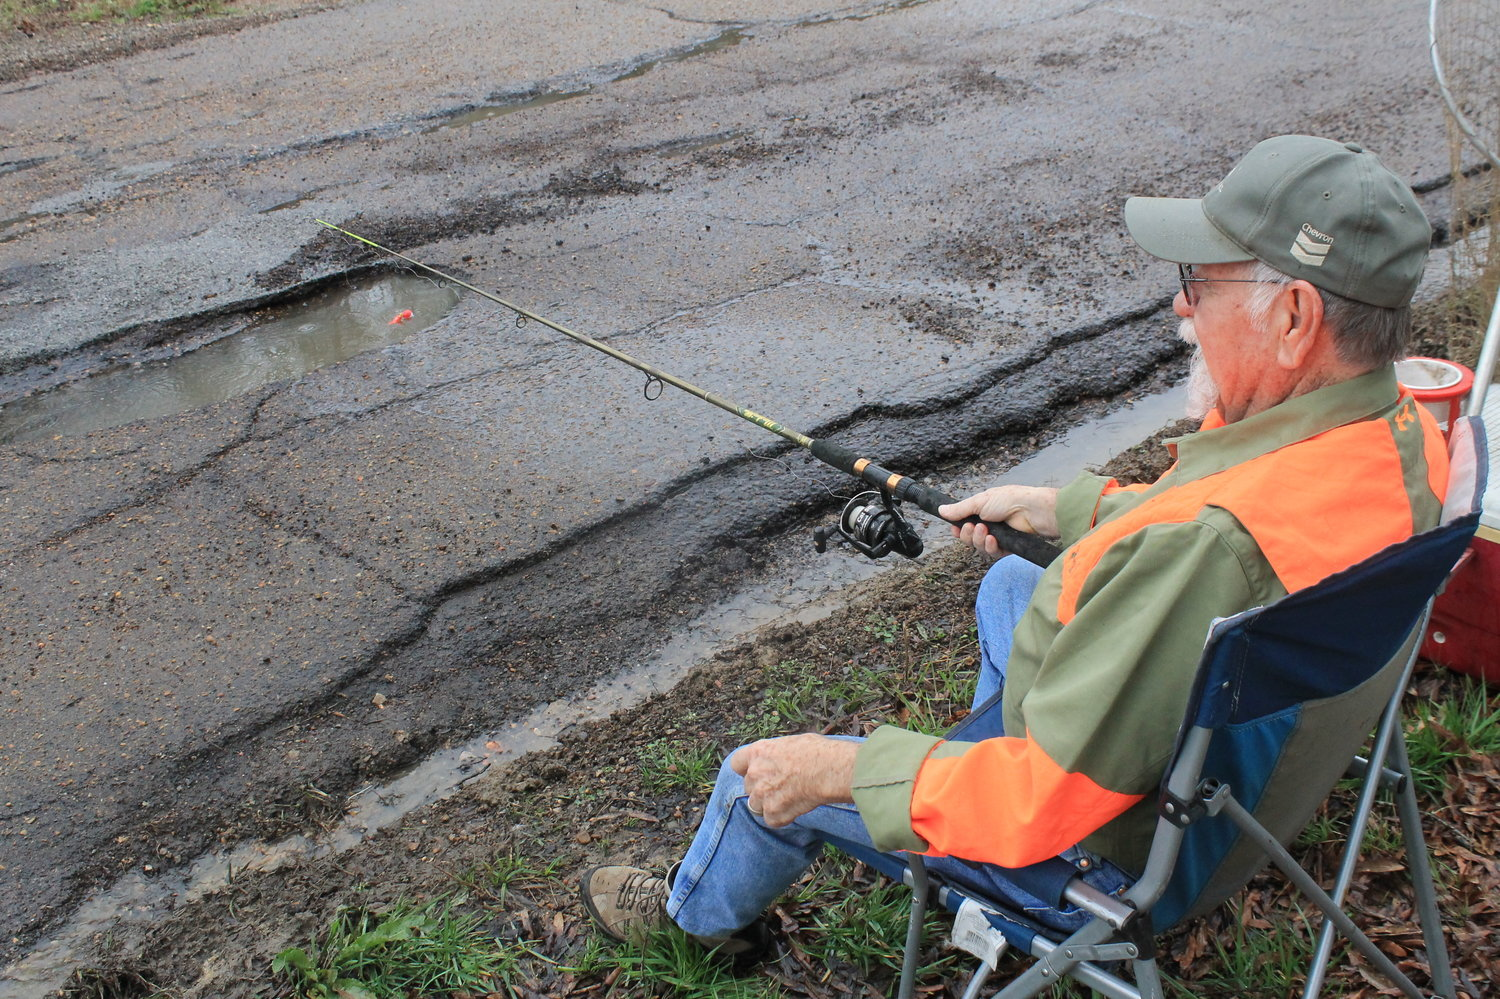 Cordova City Councilman Larry Sides pretends to fish in a pothole on Gardner's Gin Road recently during a rainy period to make a point about the potholes that dot the road.